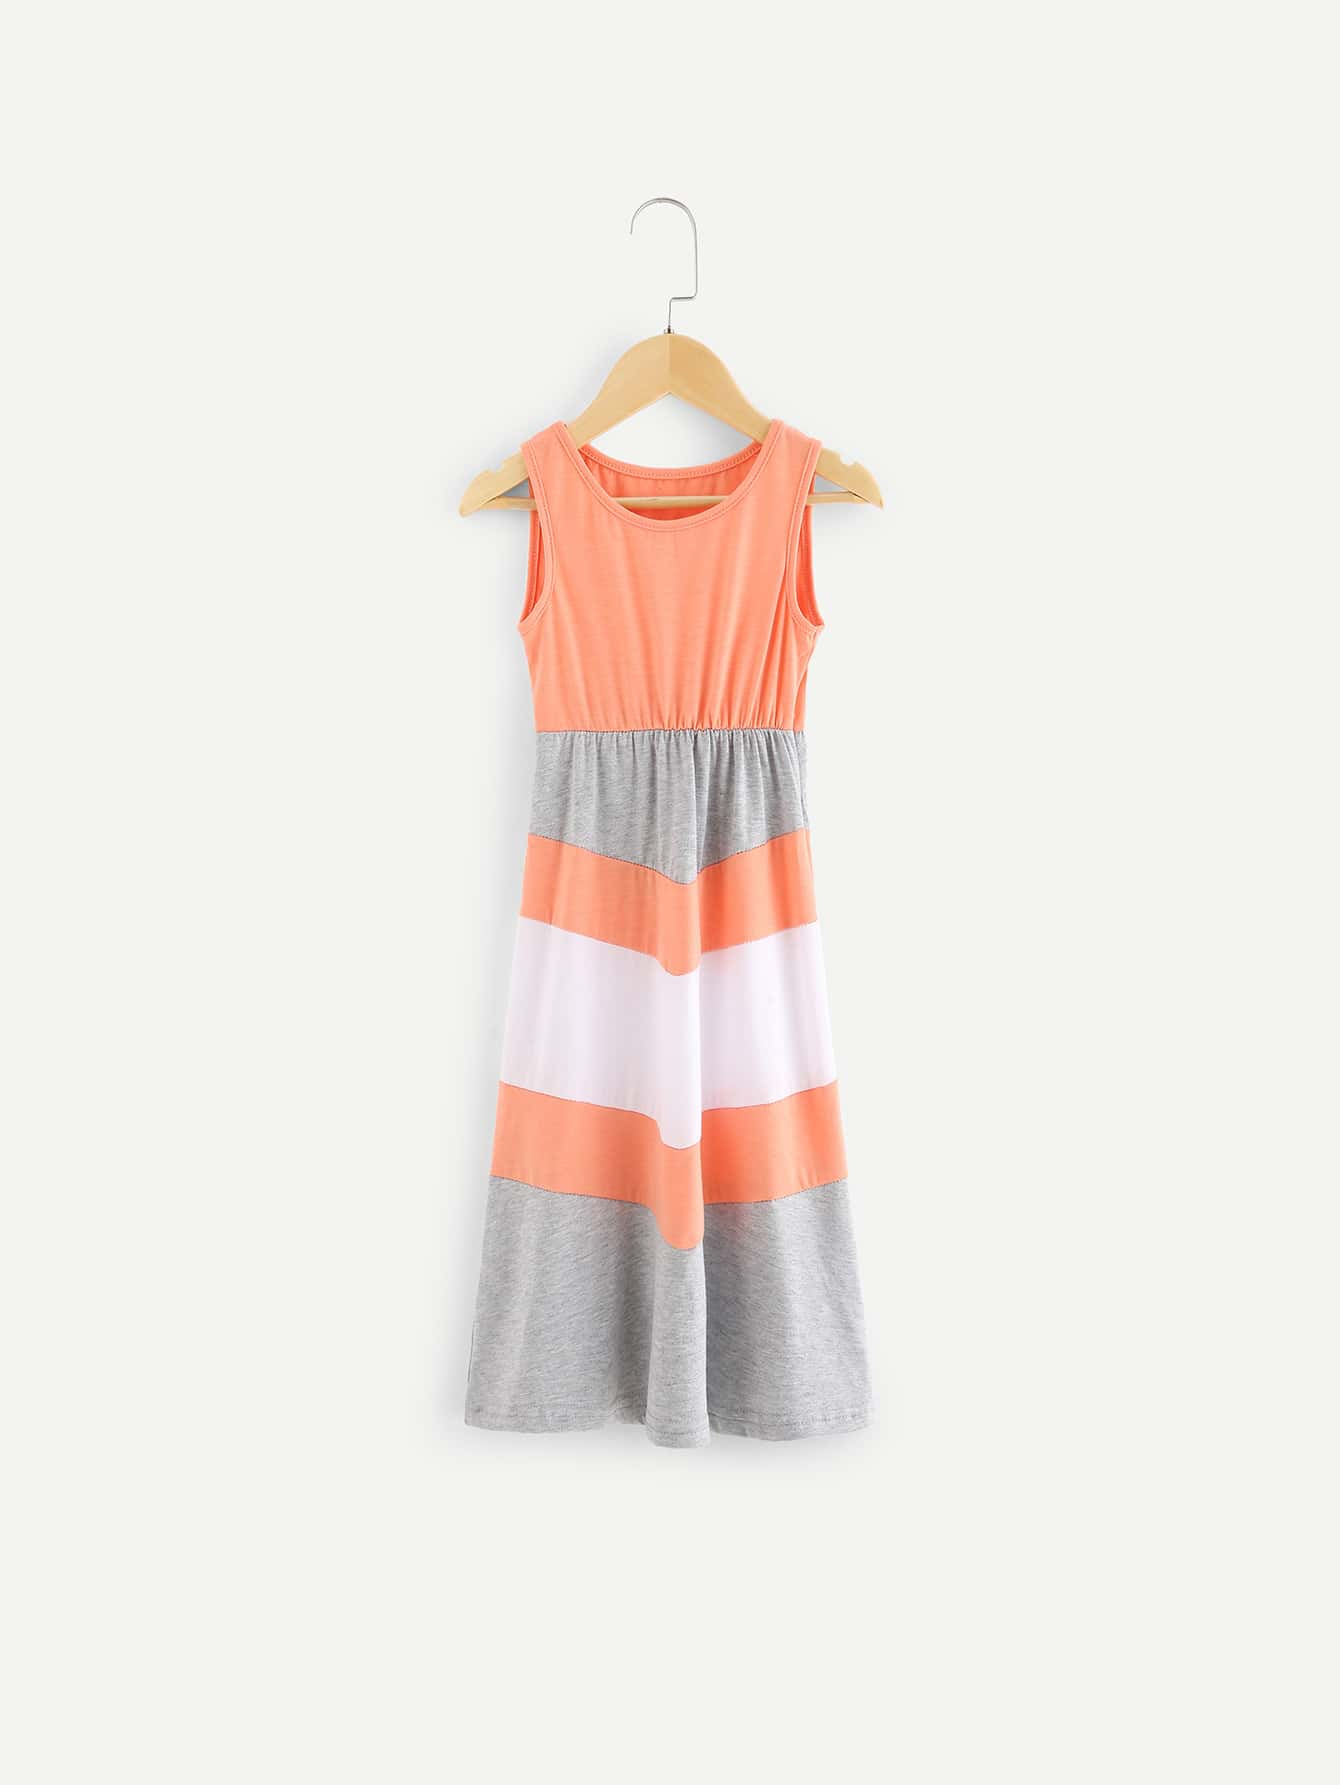 Girls Cut And Sew Colorblock Dress girls cut and sew top